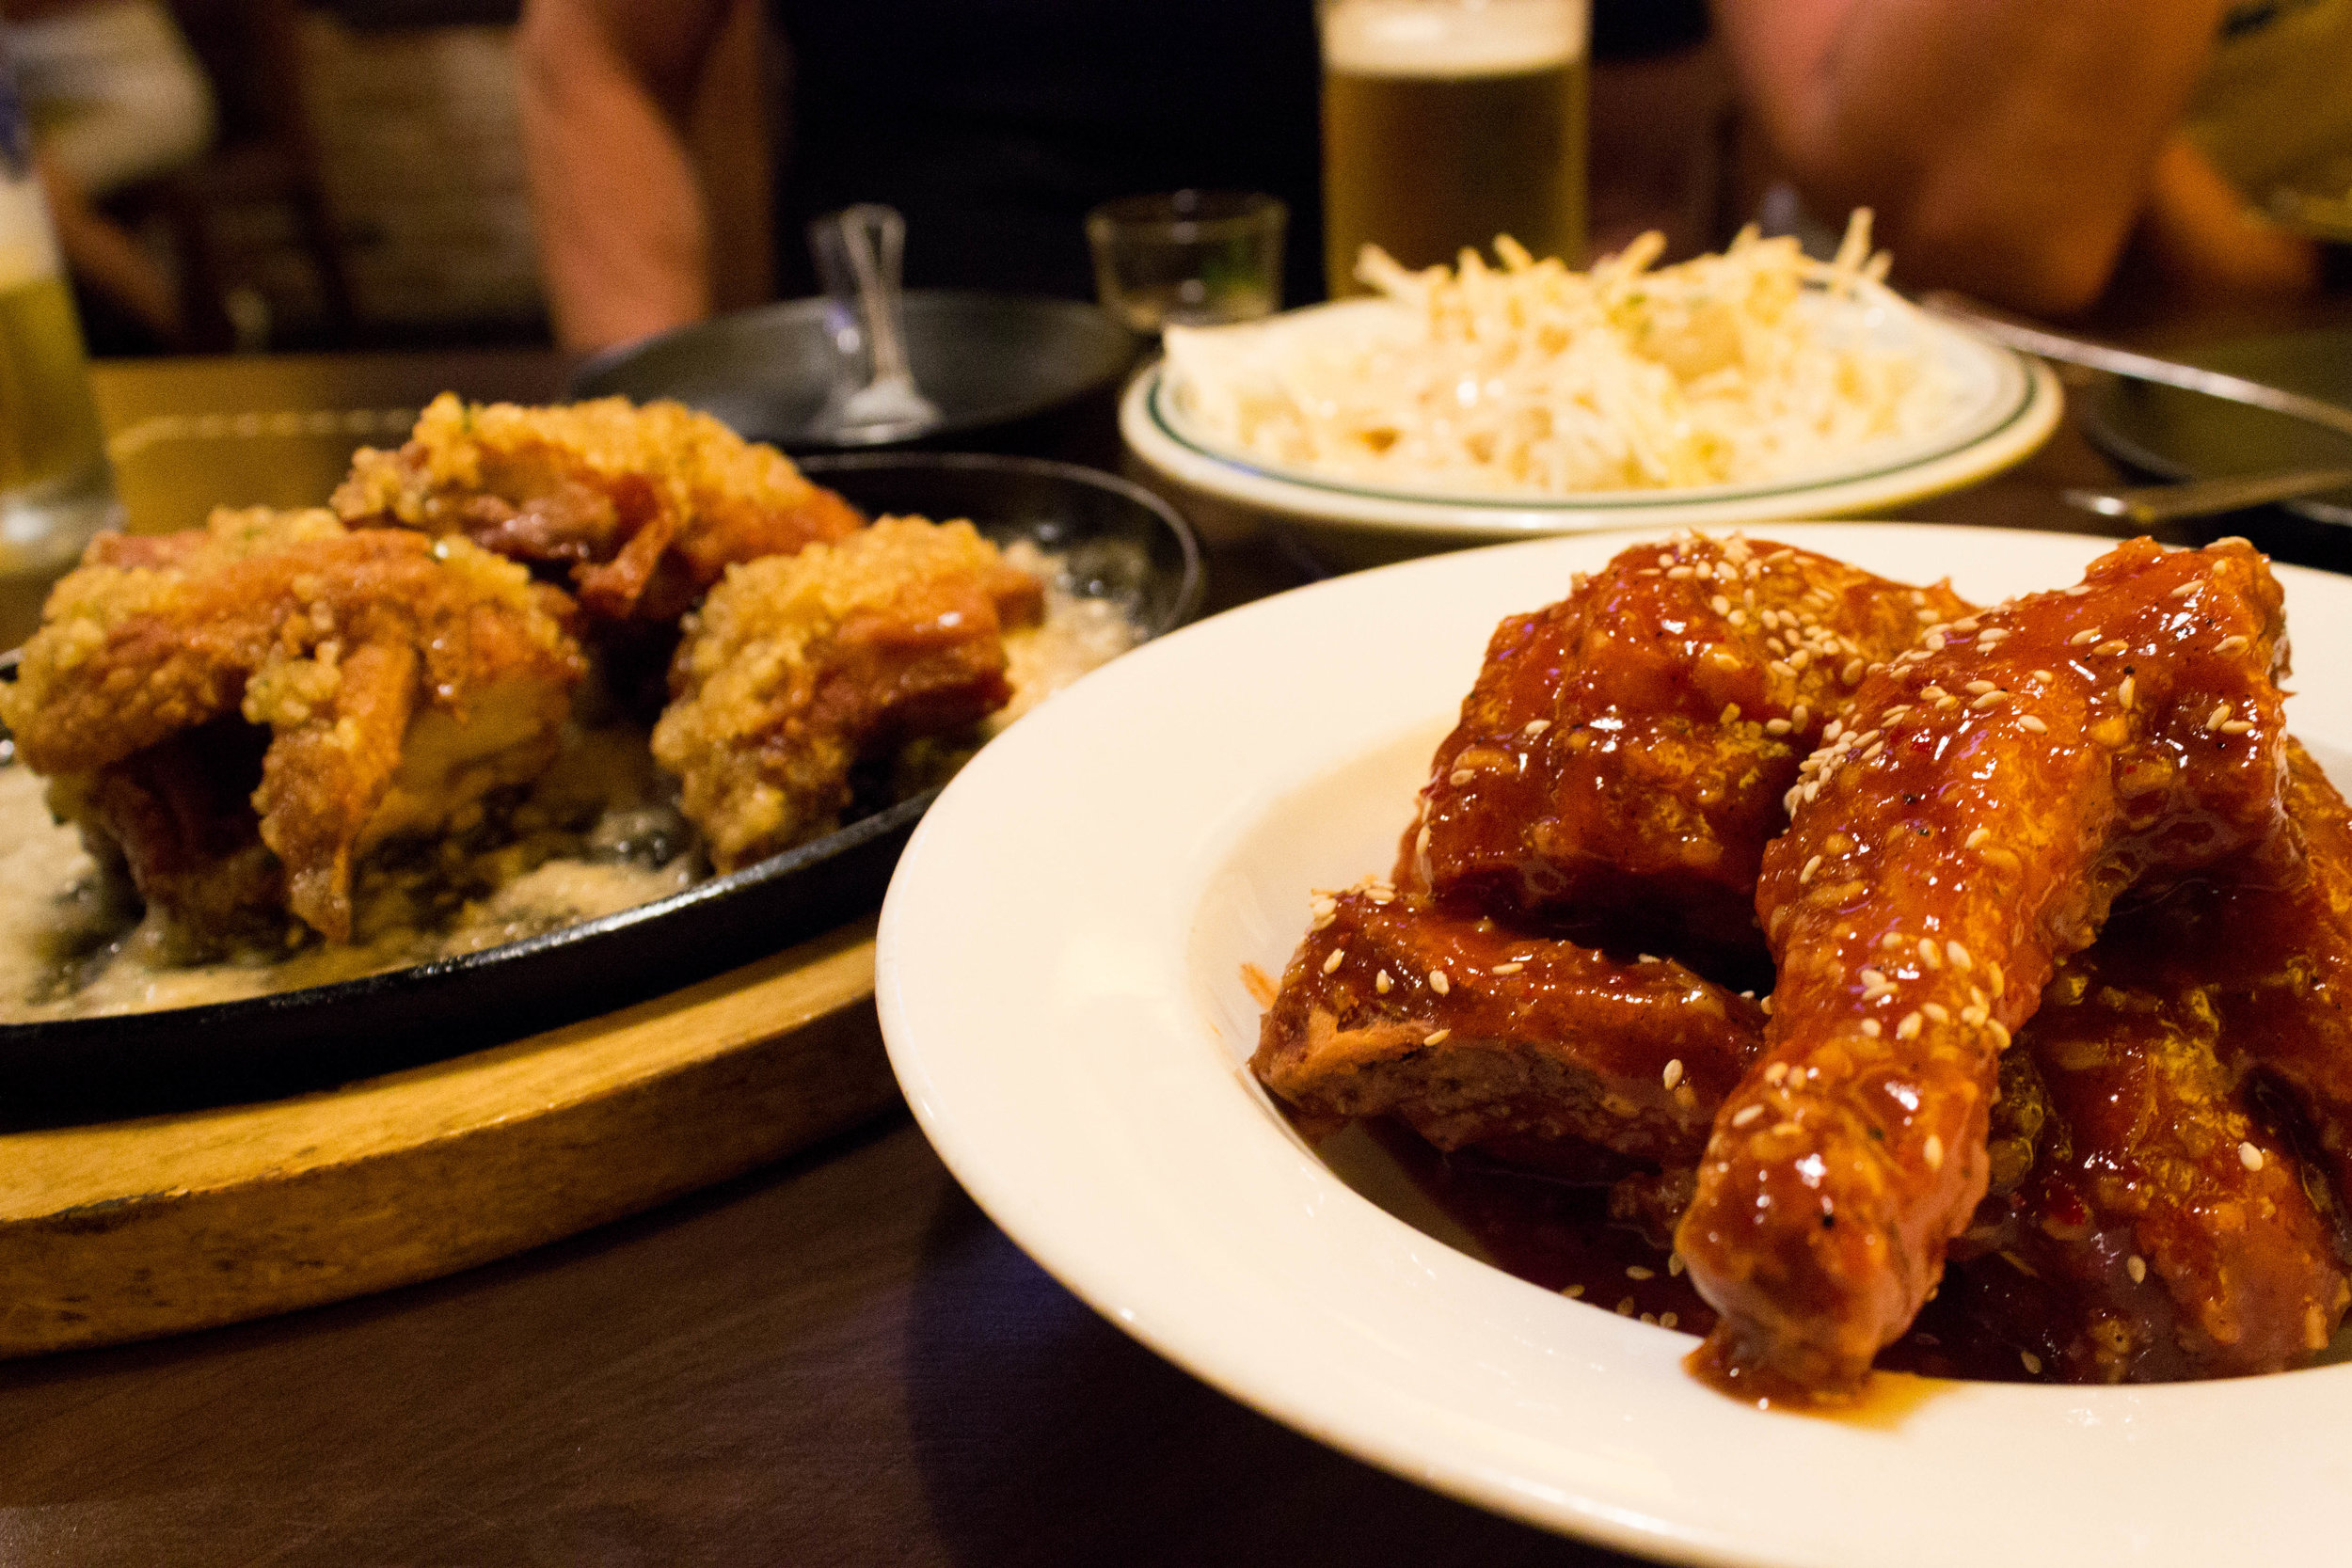 Flavored fried chicken and beer (original sweet &spicy flavor and garlic flavor)